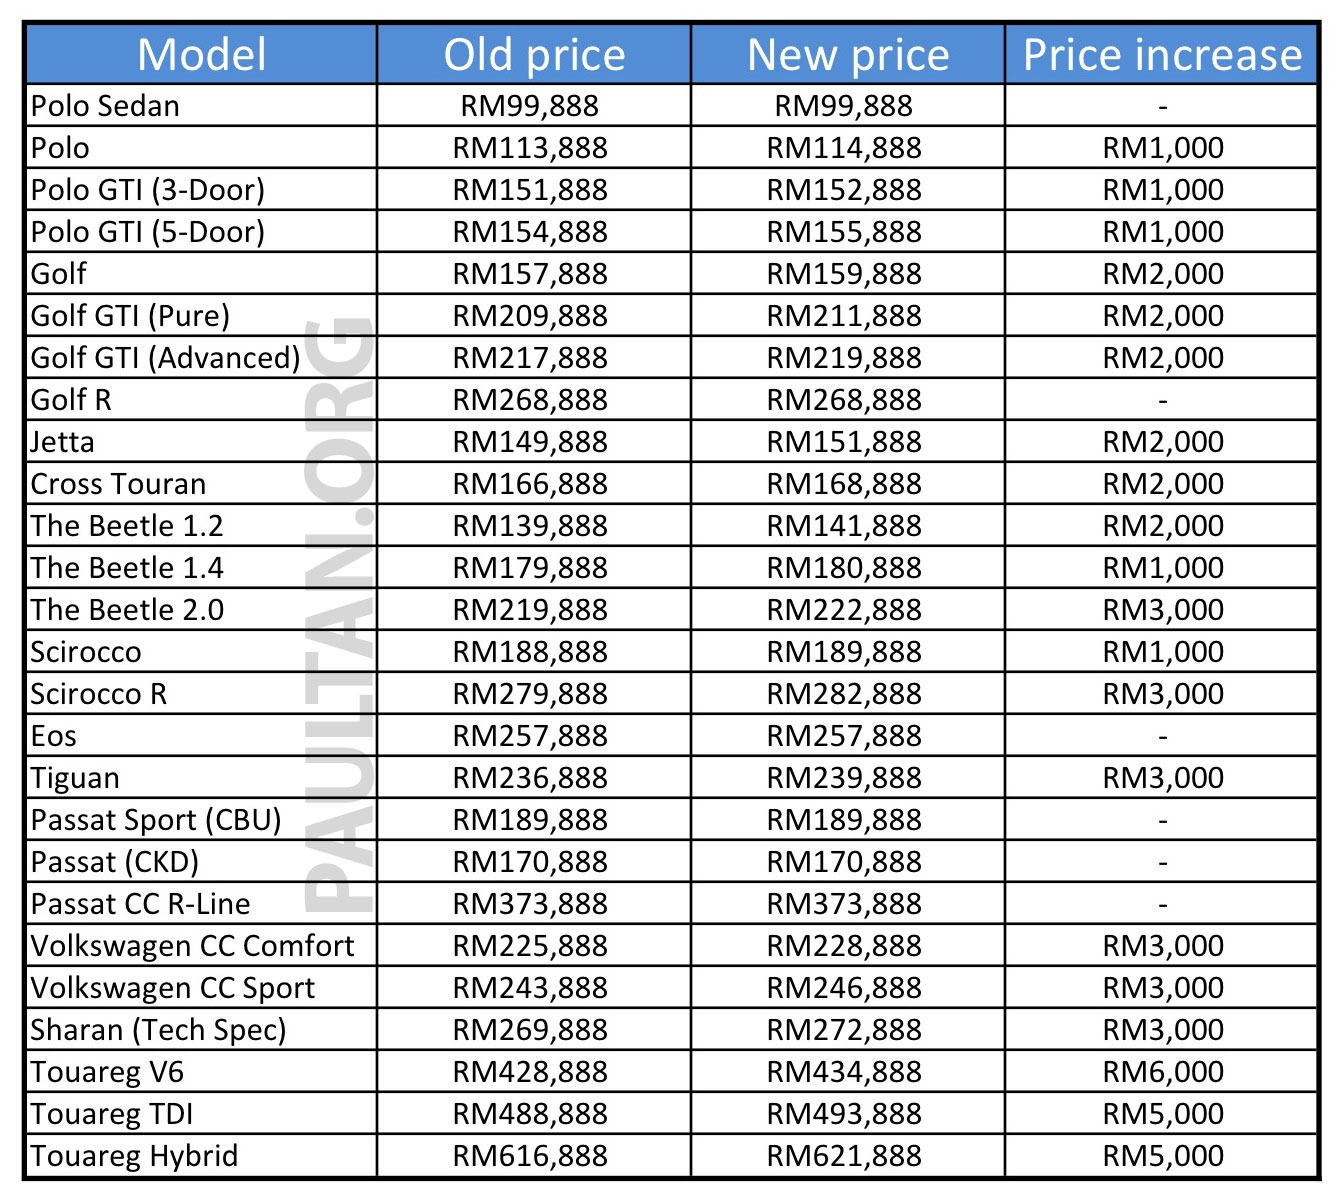 volkswagen malaysia issues wide price increase